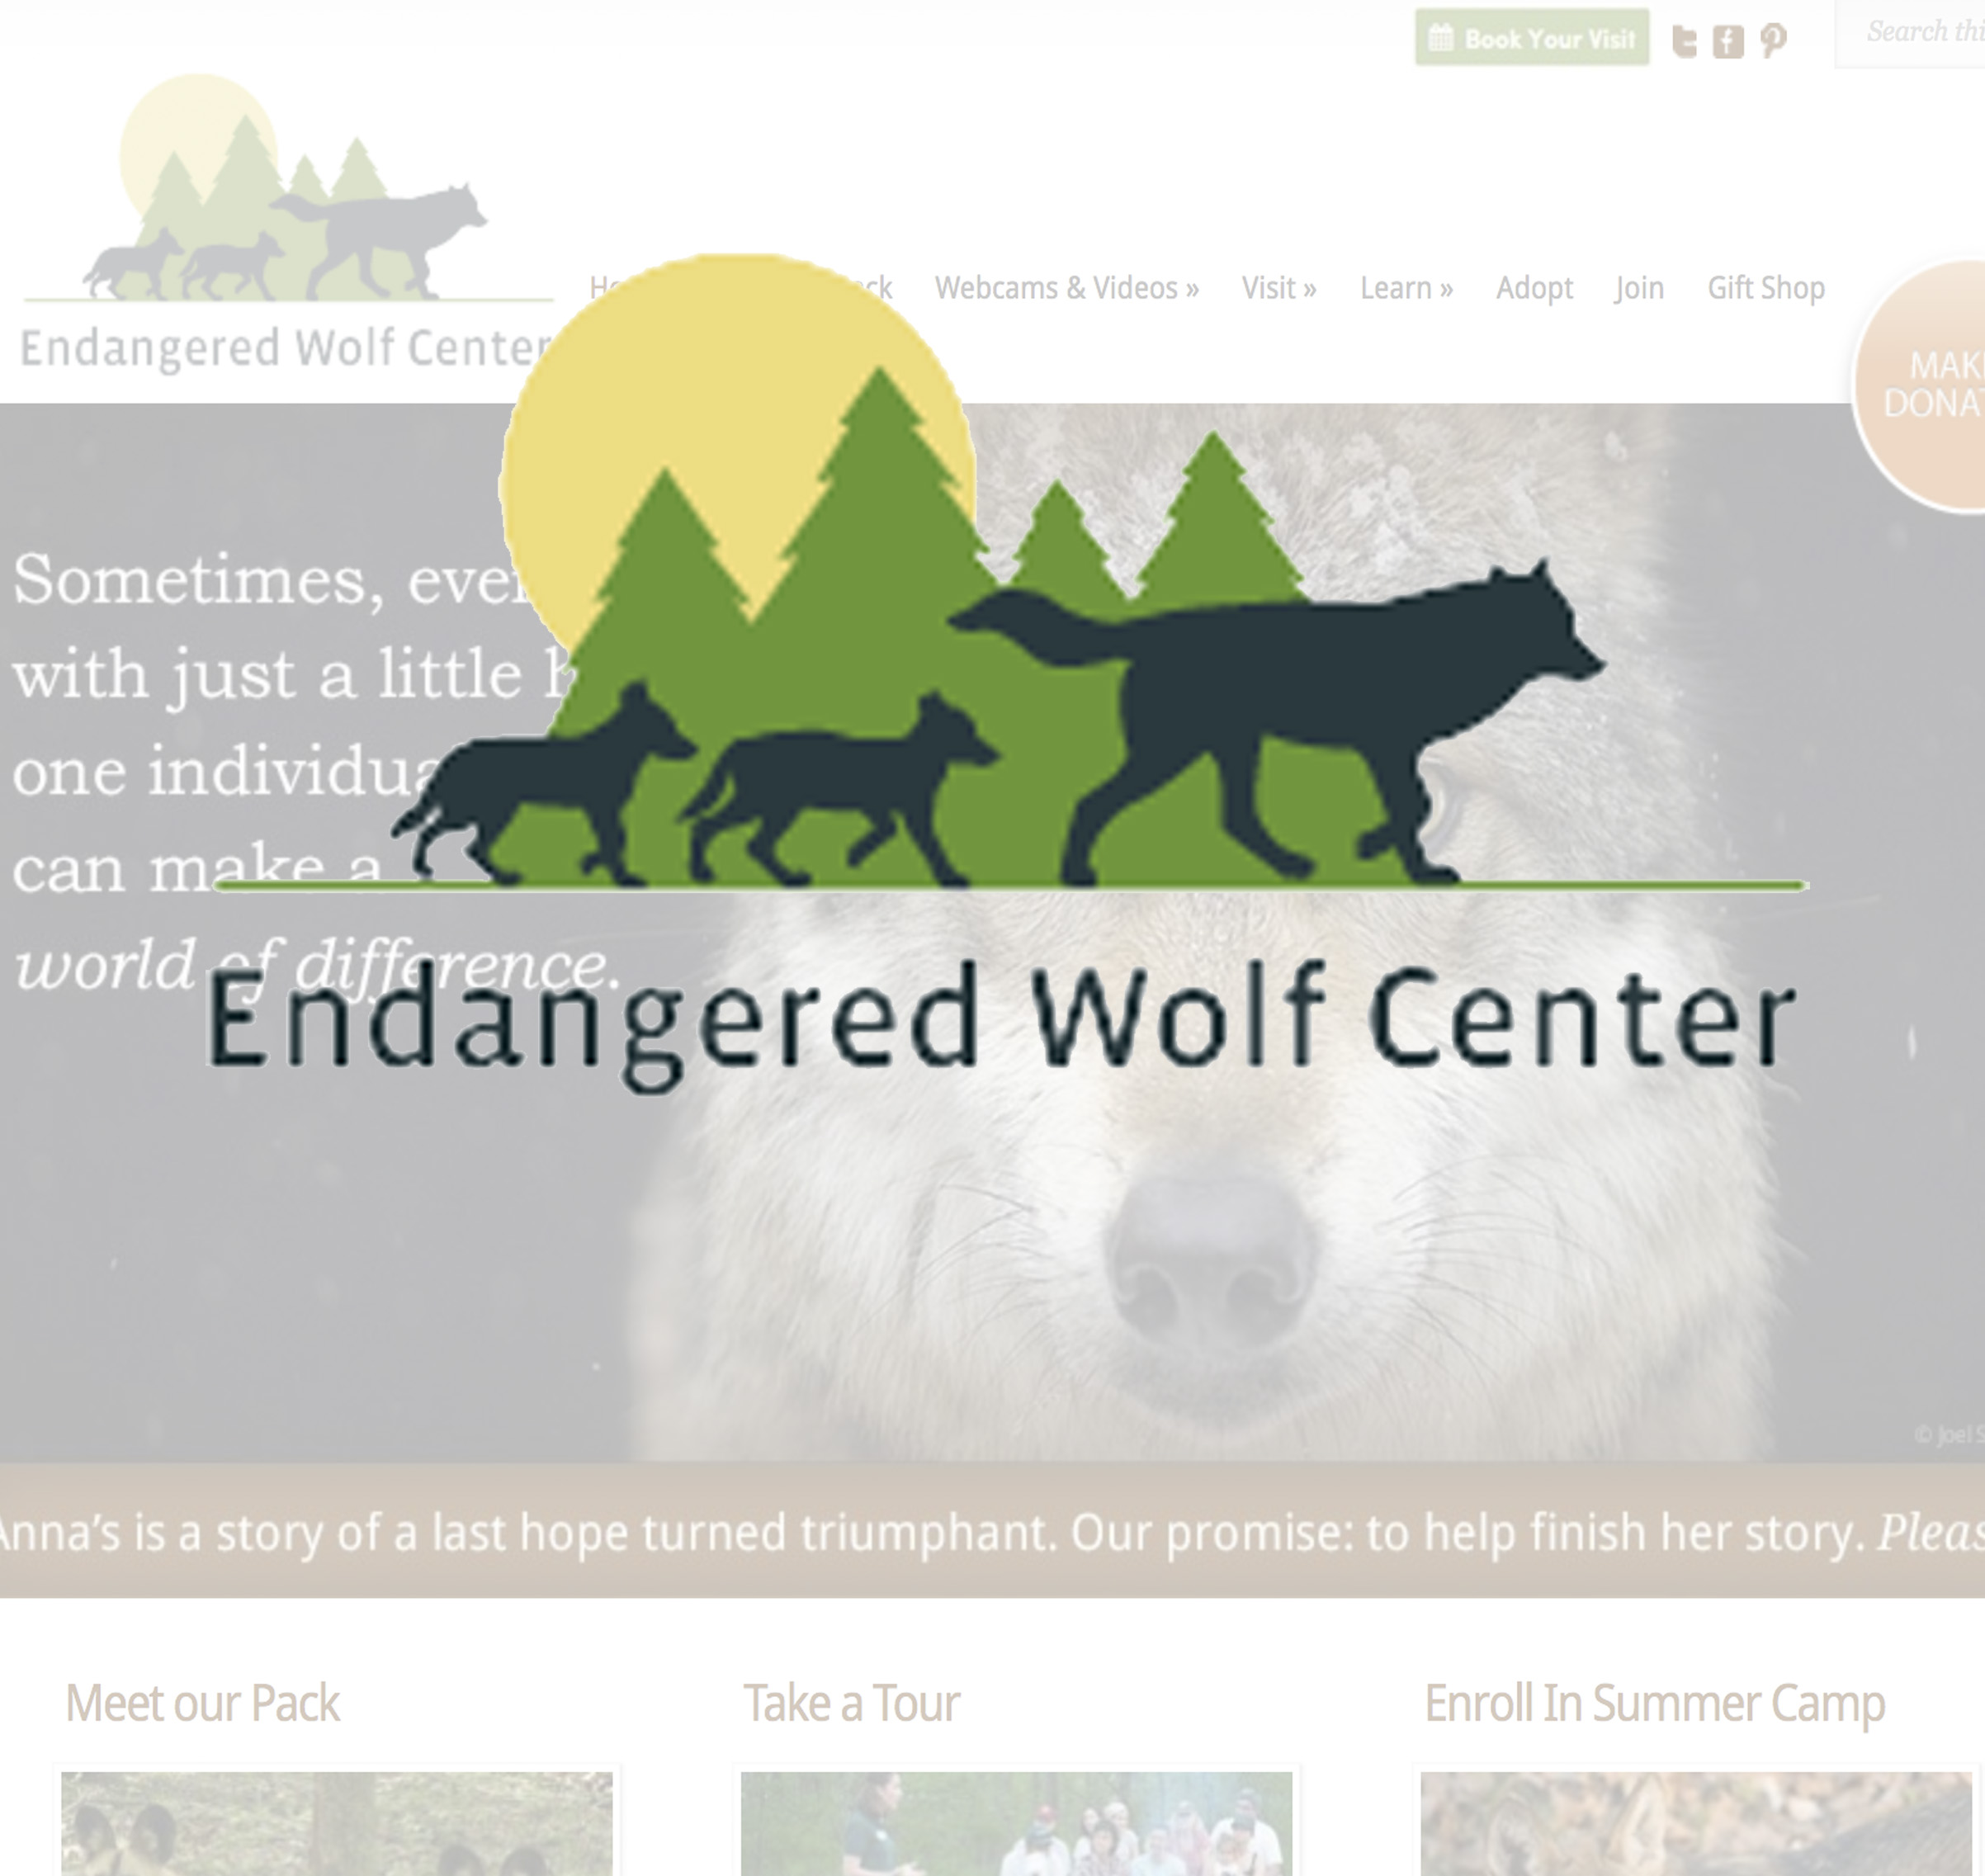 Endangered Wolf Center: Putting Some Howl in the Heart of a Non-profit Organization